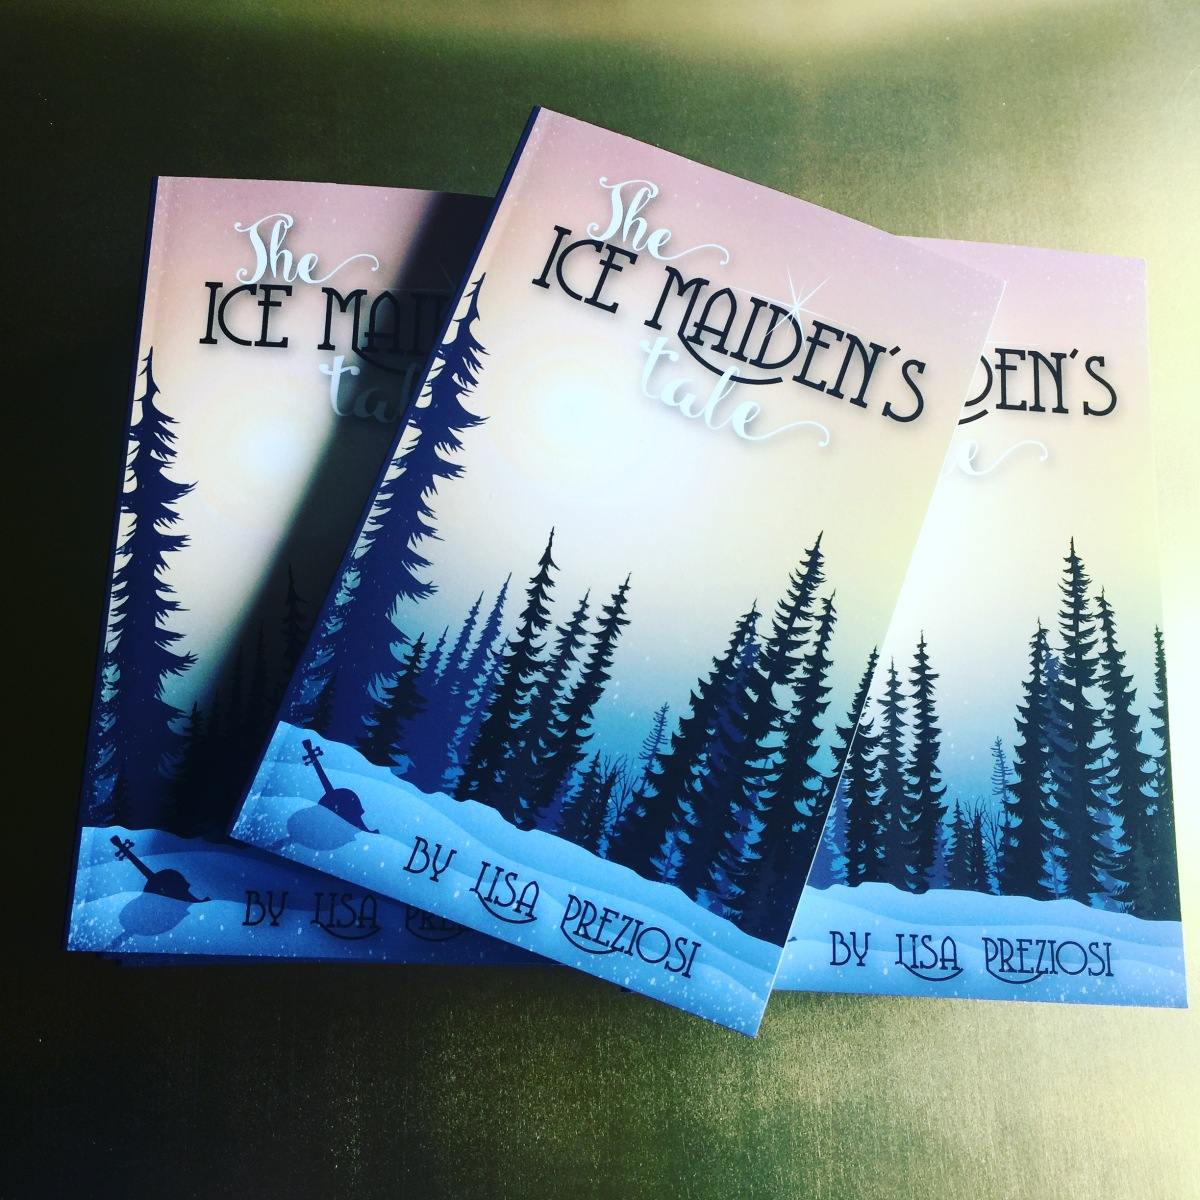 Writer's Shelf: The Ice Maiden's Tale Launch!